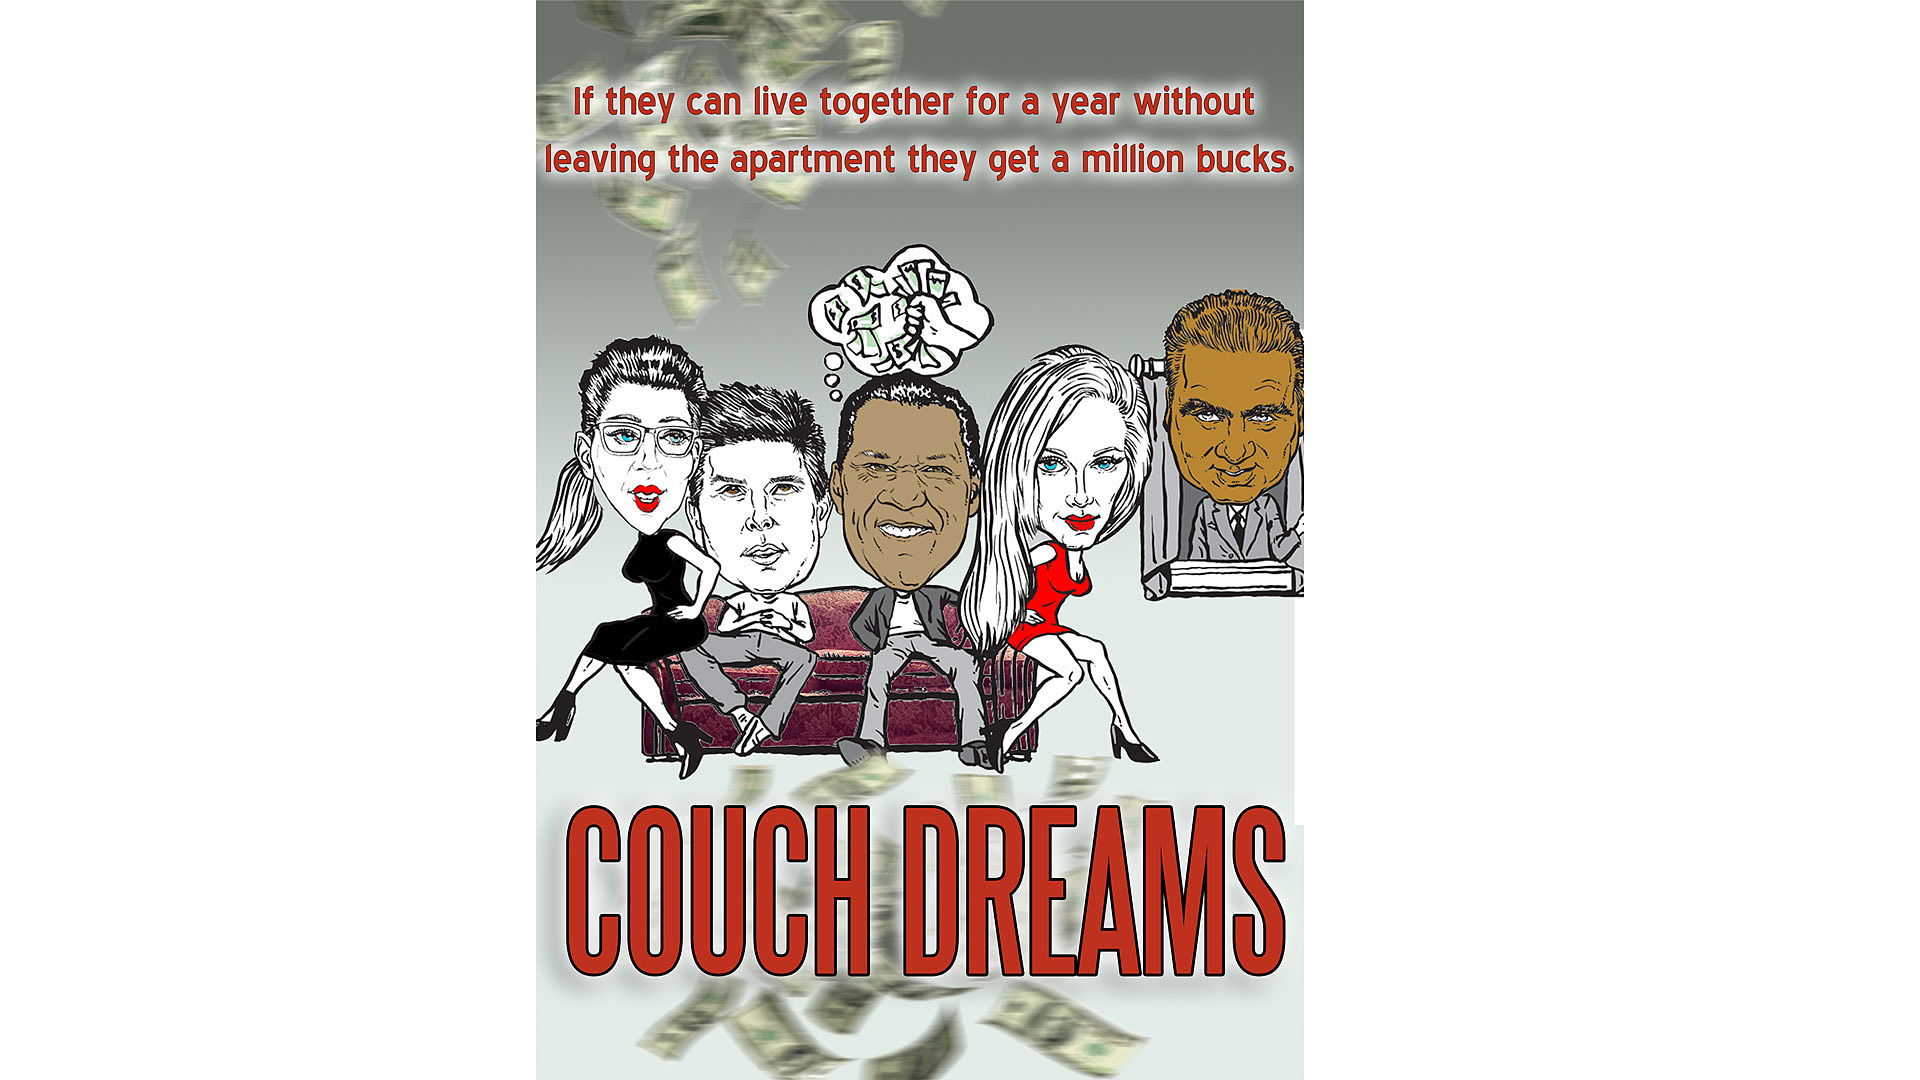 Week 4 Key It: Poster A Couch Dreams